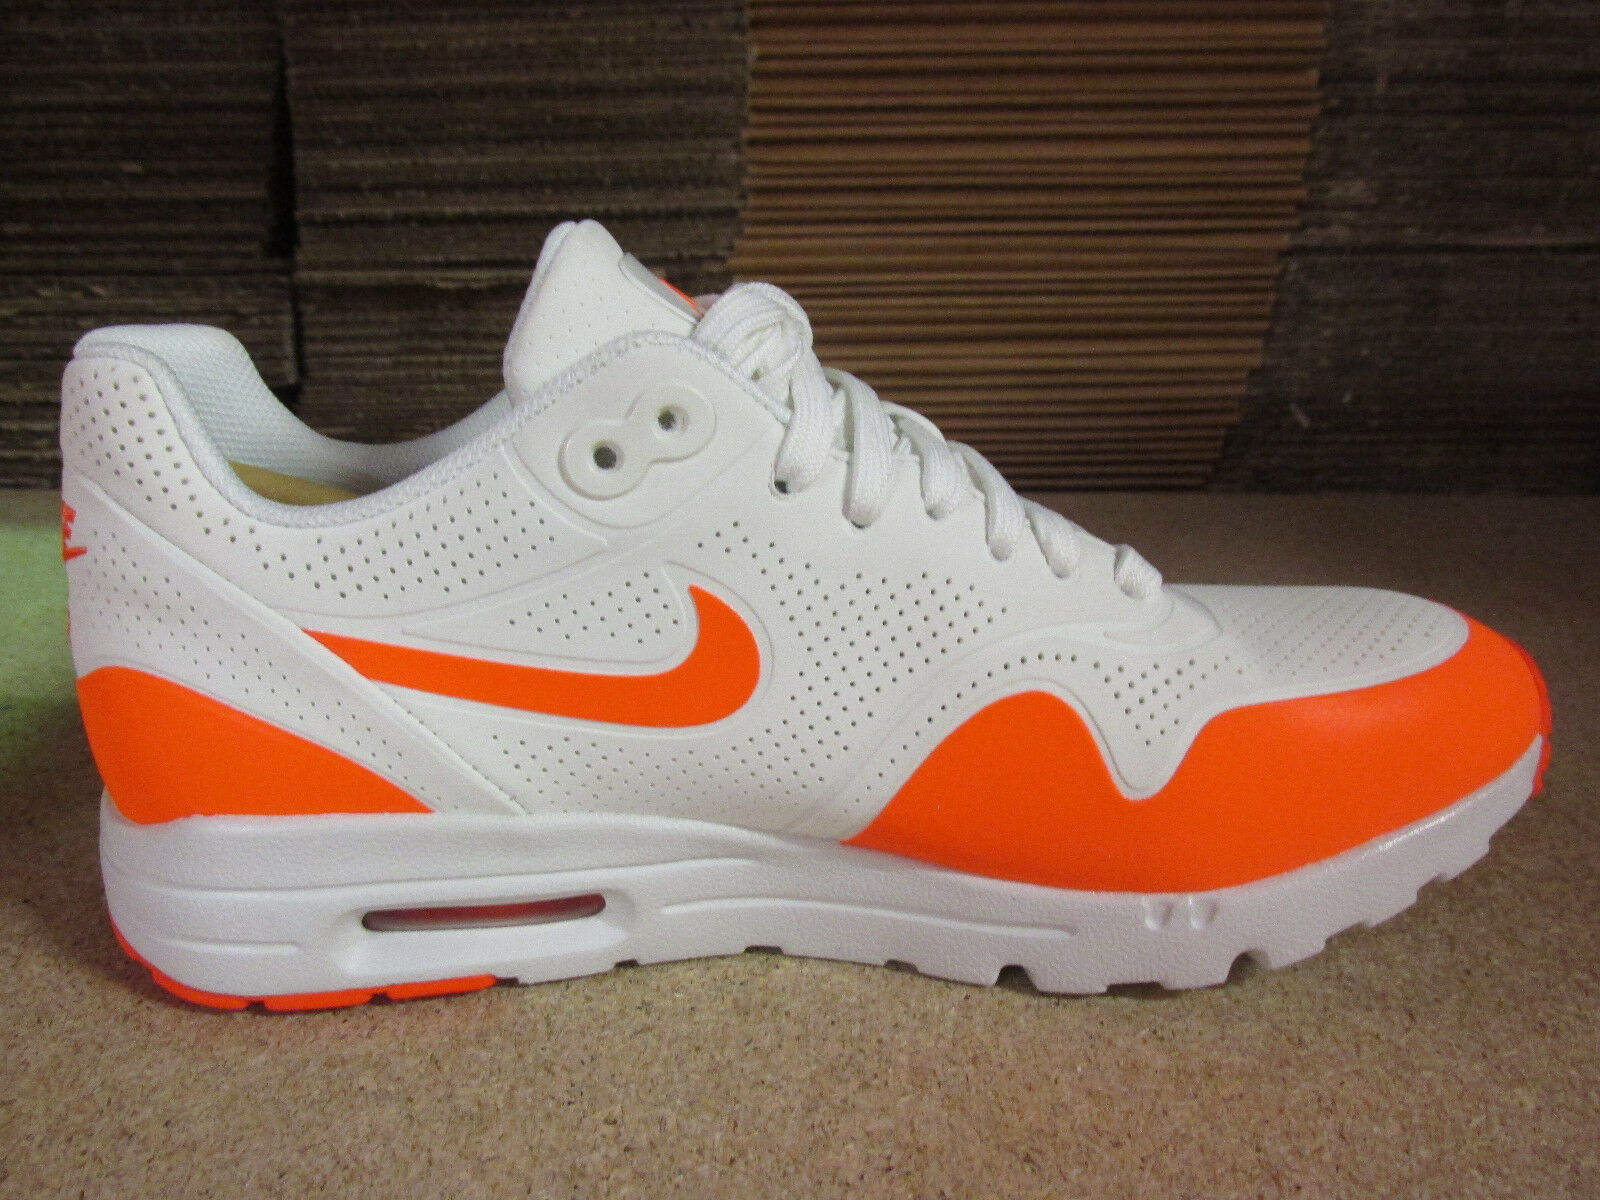 nike air max 1 ultra moire womens 103 trainers 704995 103 womens sneakers shoes b8c728